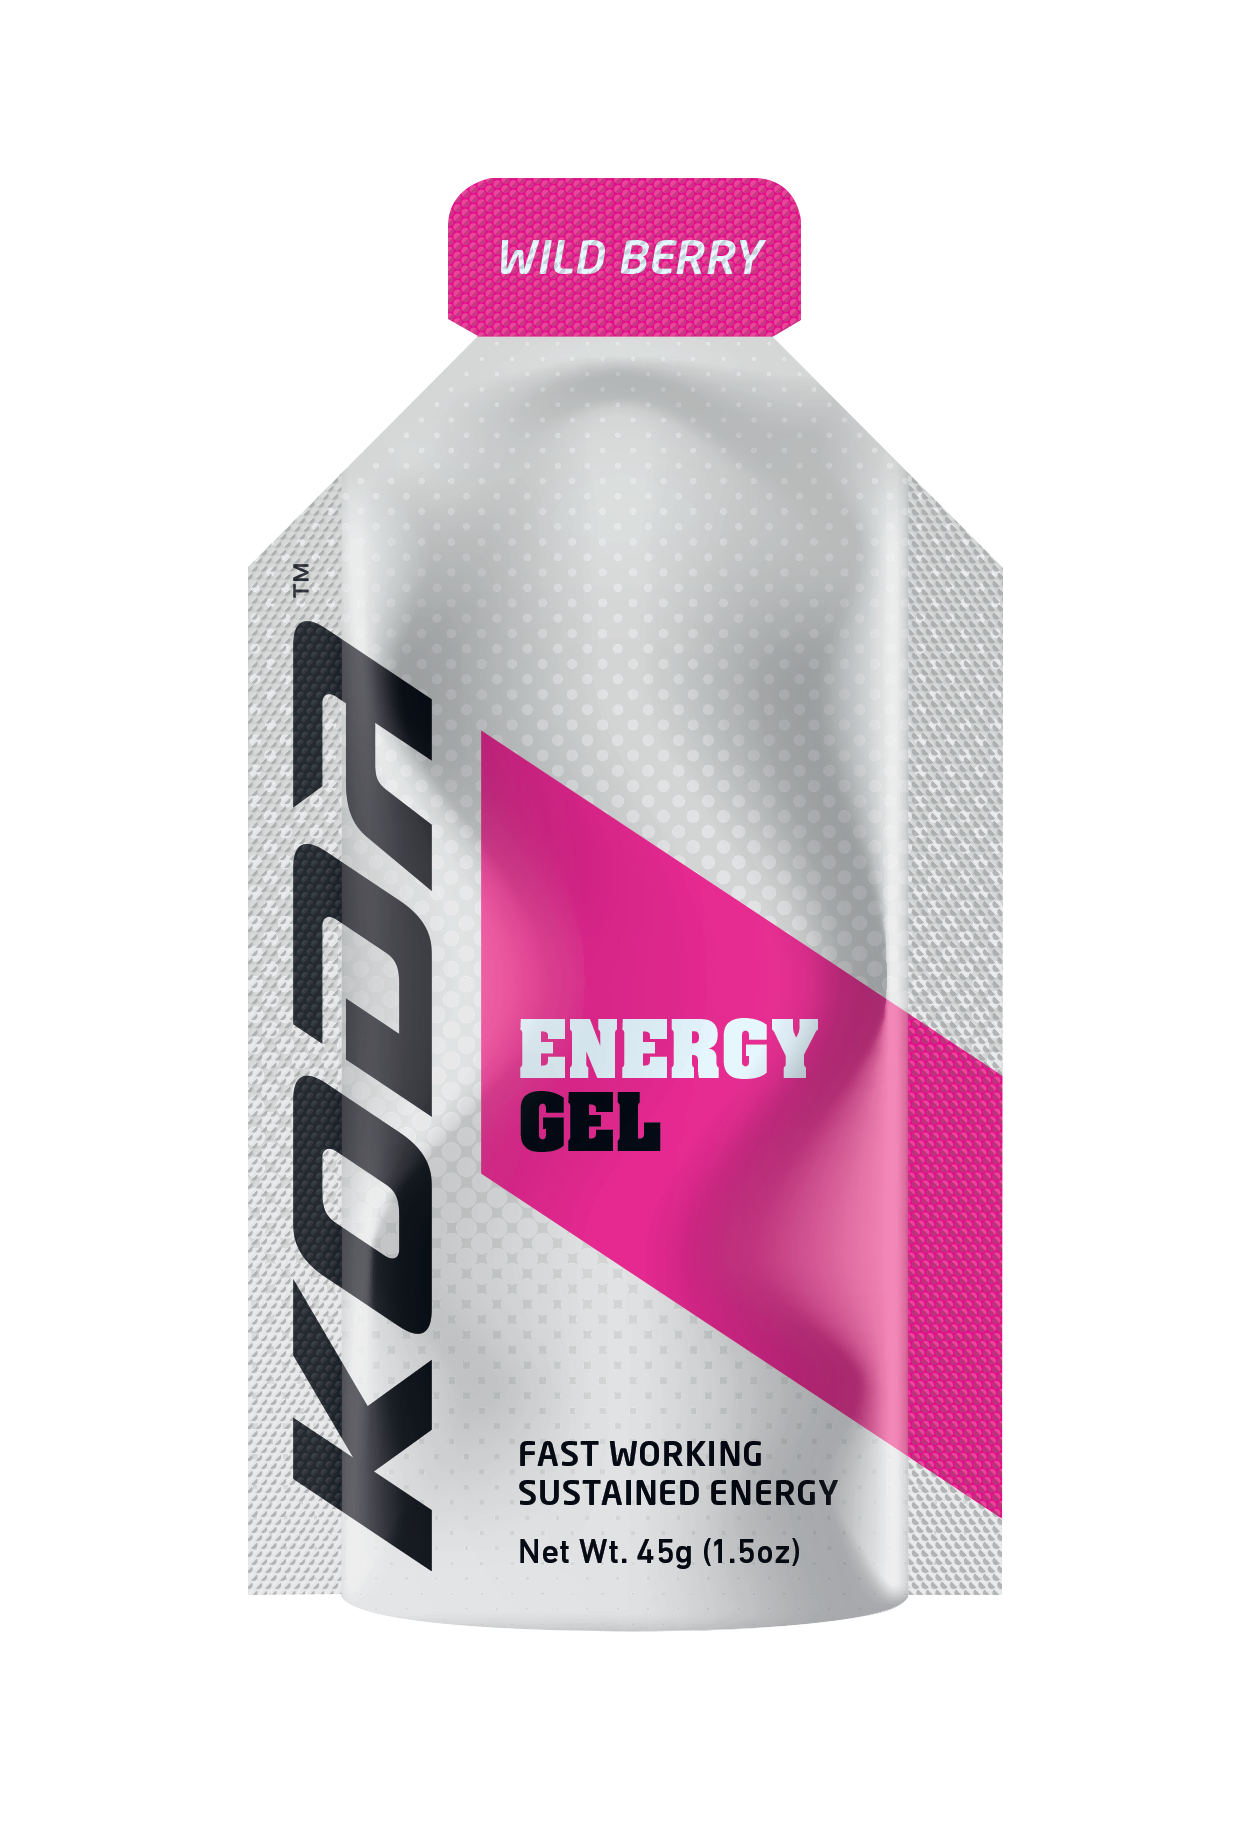 Koda-Shotz Energy Gels Box Qty (24 Pack) - Wild Berry - Find Your Feet - Hobart Australia Hobart Launceston Tasmania Trail Running Hiking